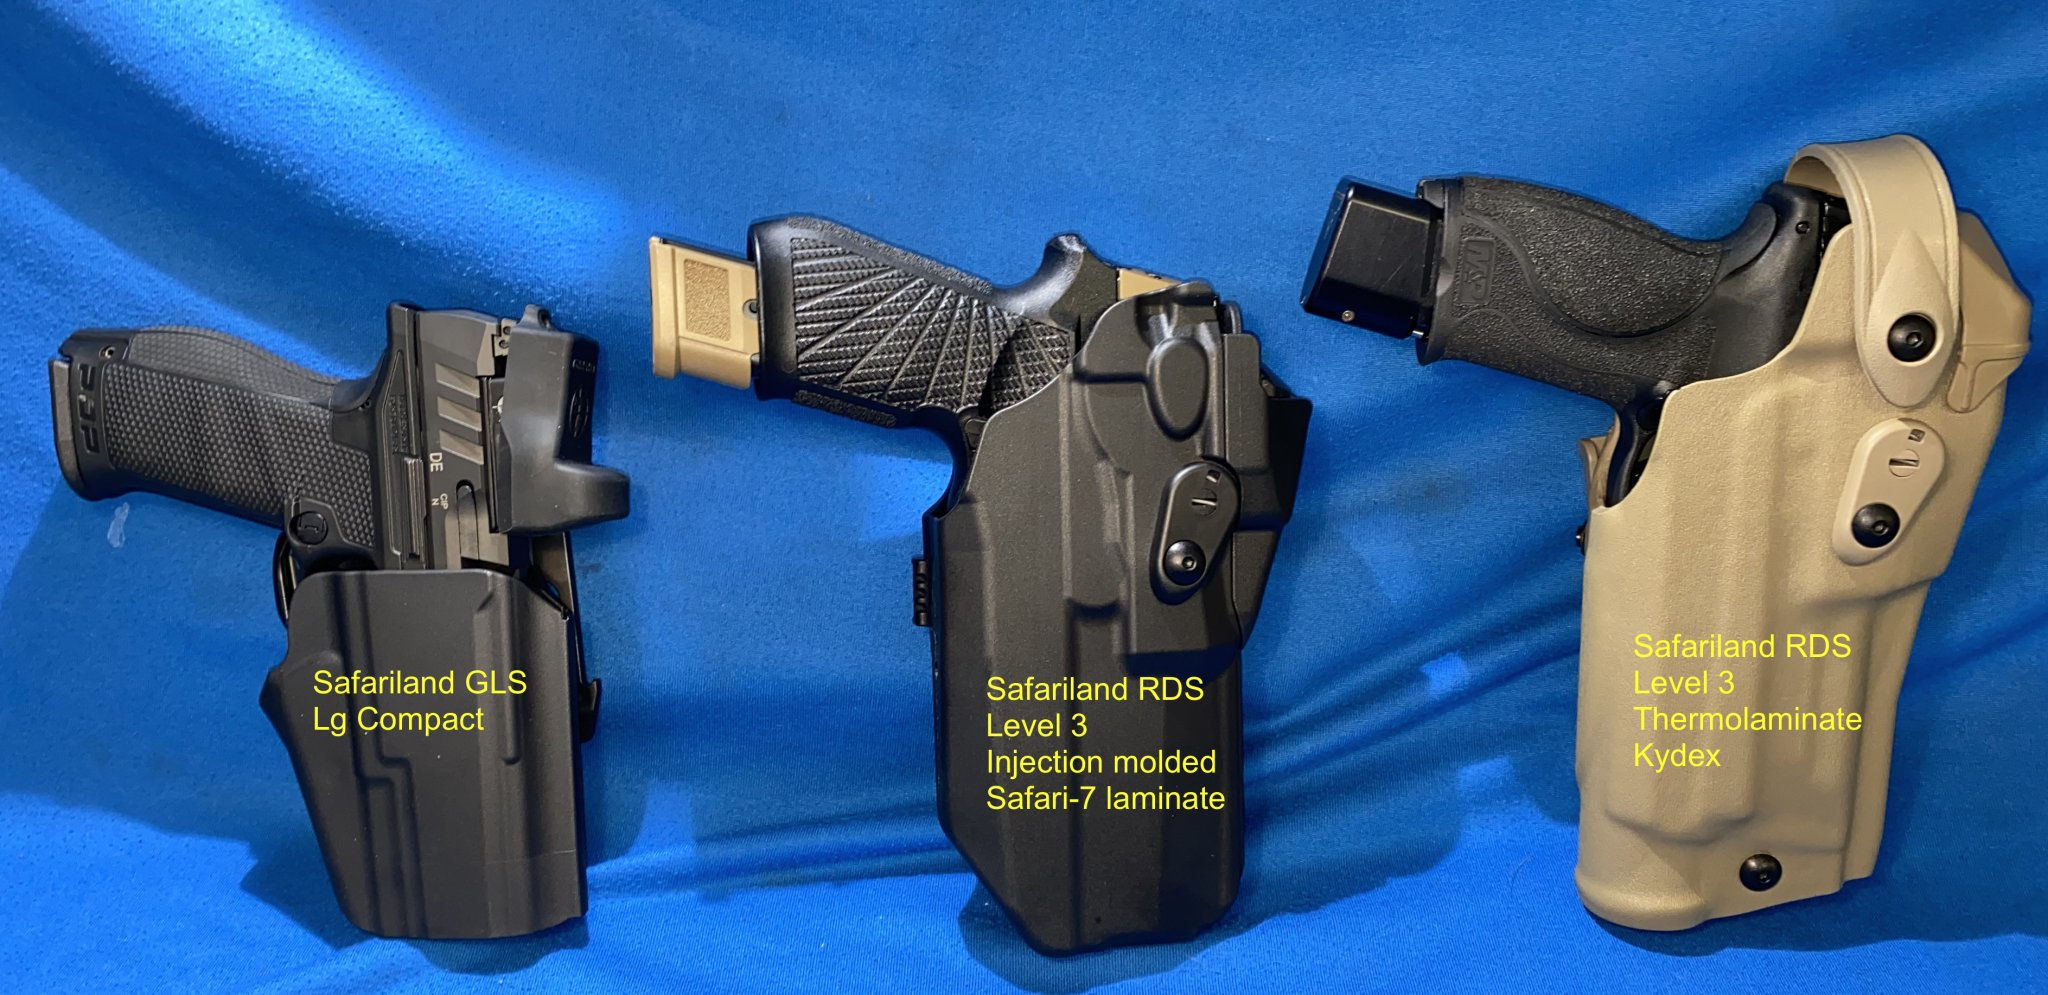 IMG_8634Walther PDP Sig P320 M&P9 2.0 PC with Leupold Delta Point Pro 2.5 MOA and Holsters 03....jpg